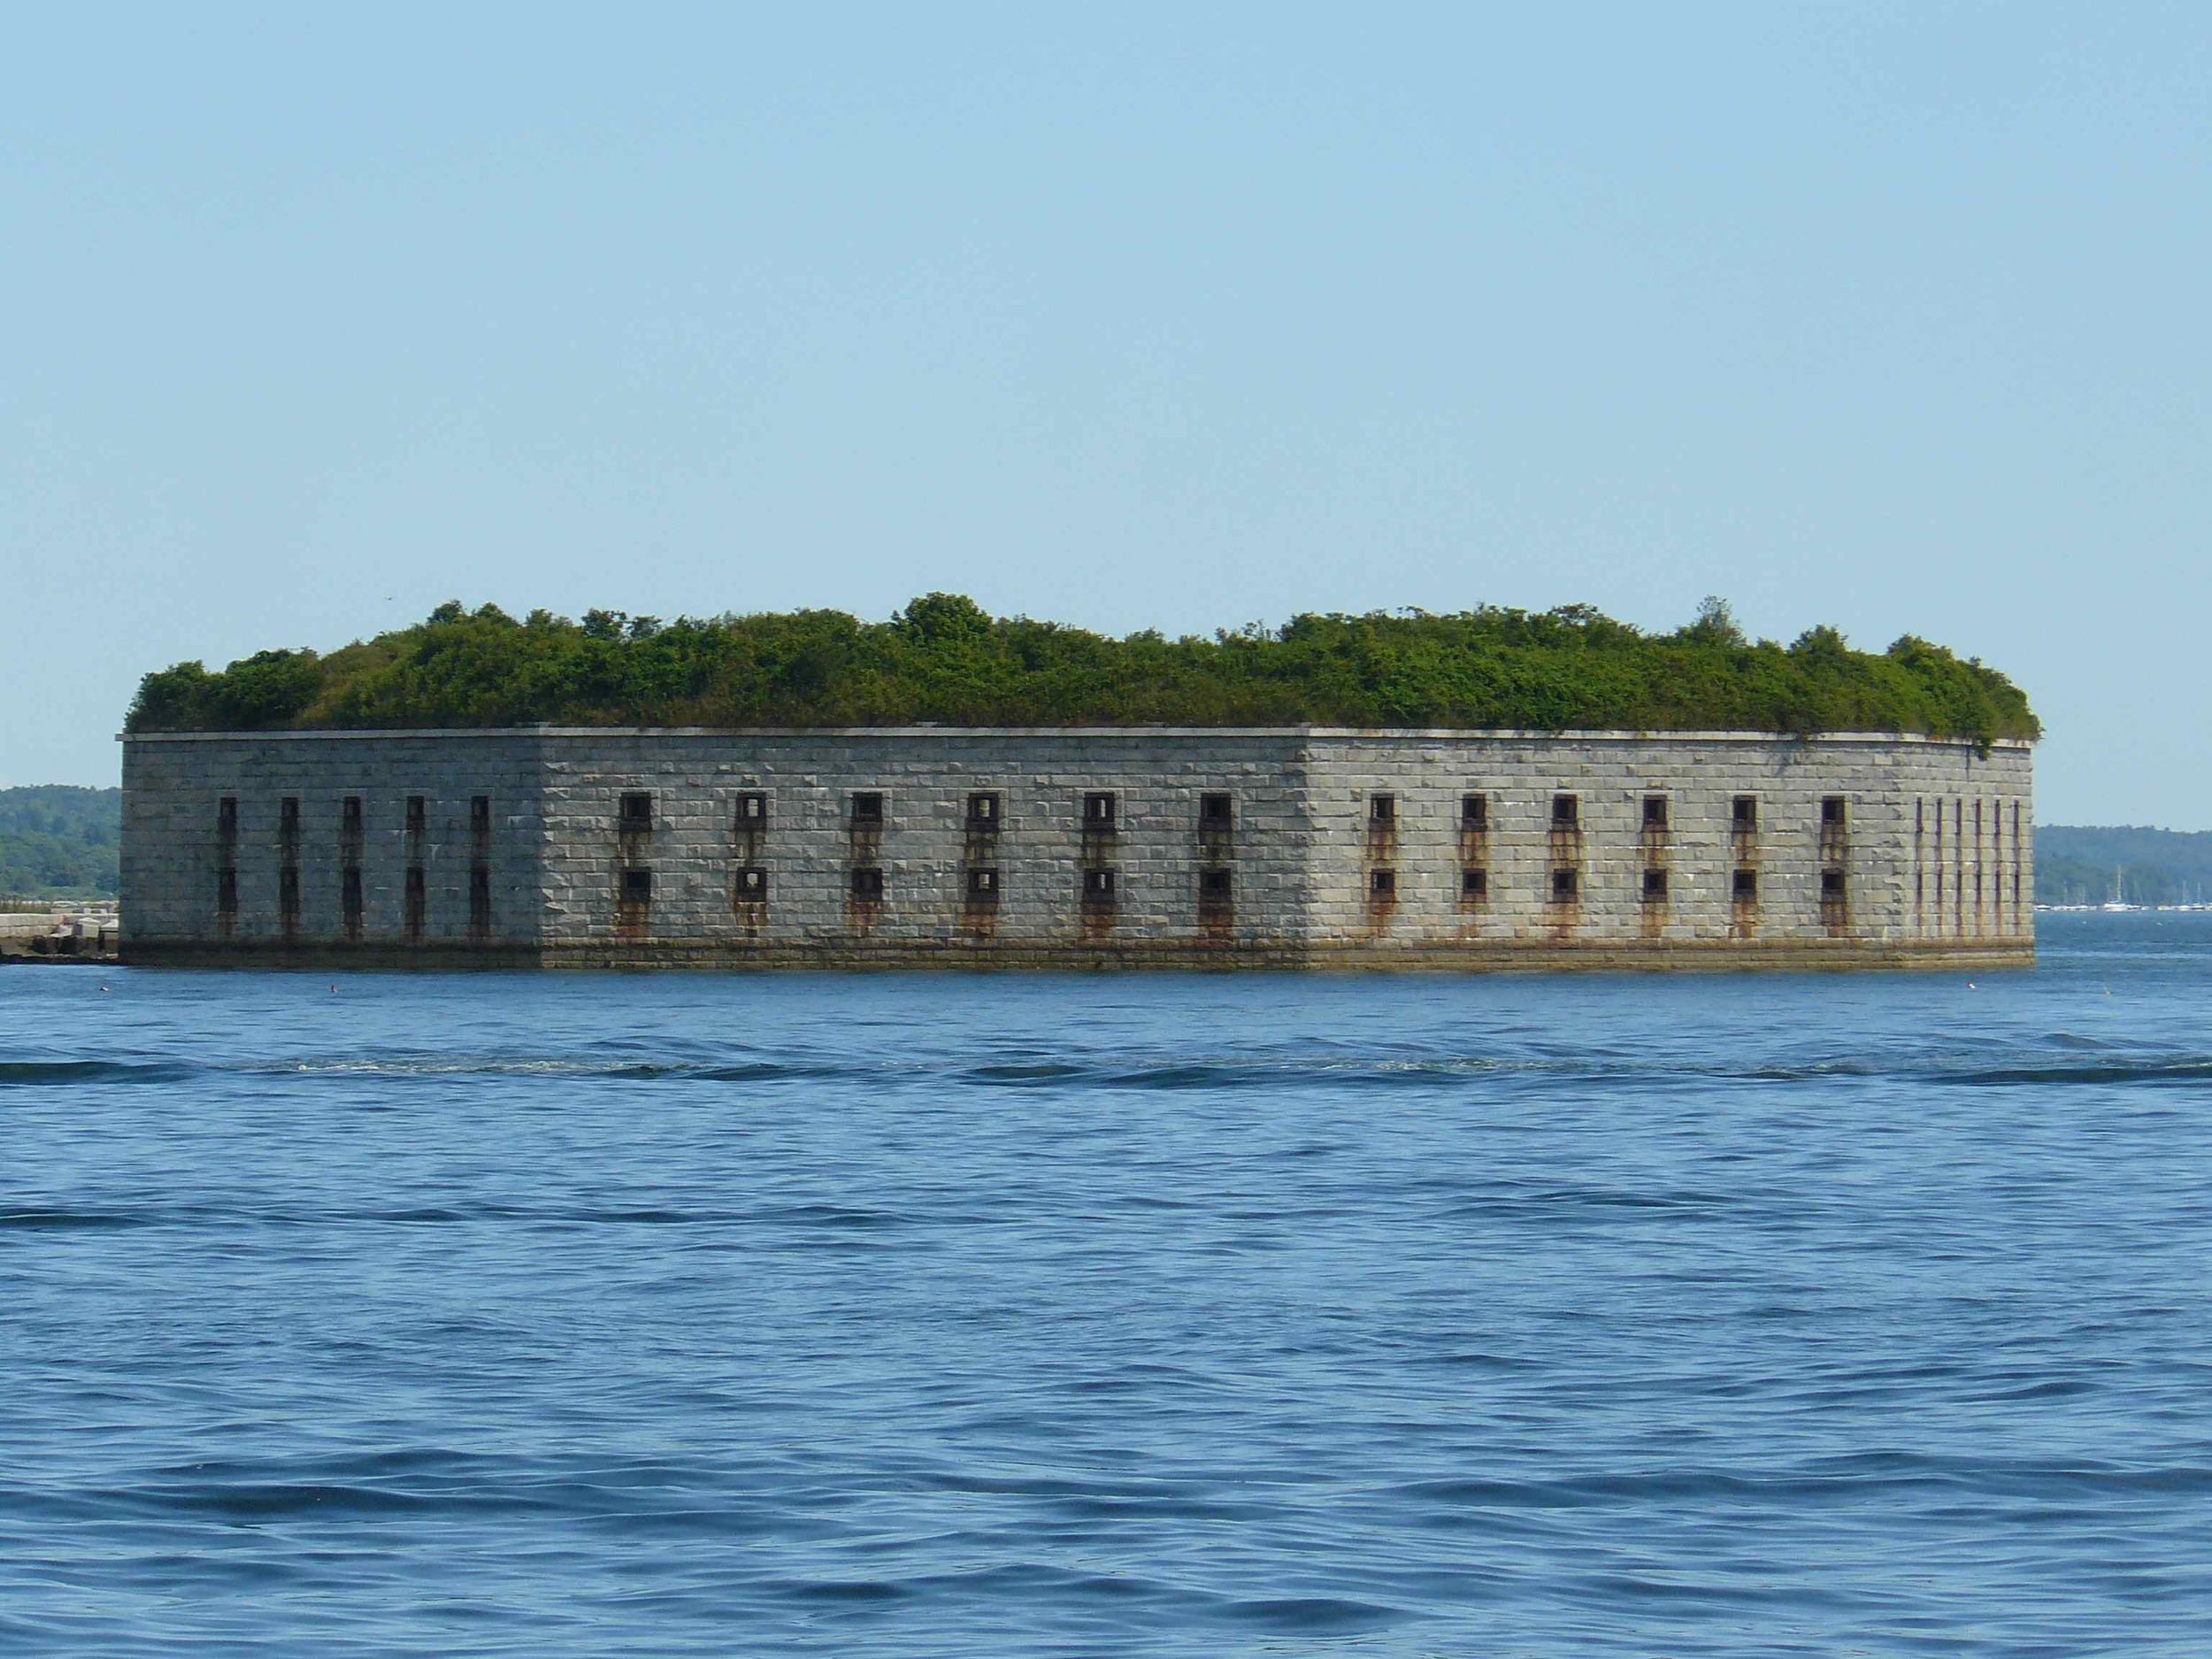 Fort_Gorges_July_2012_front.jpg